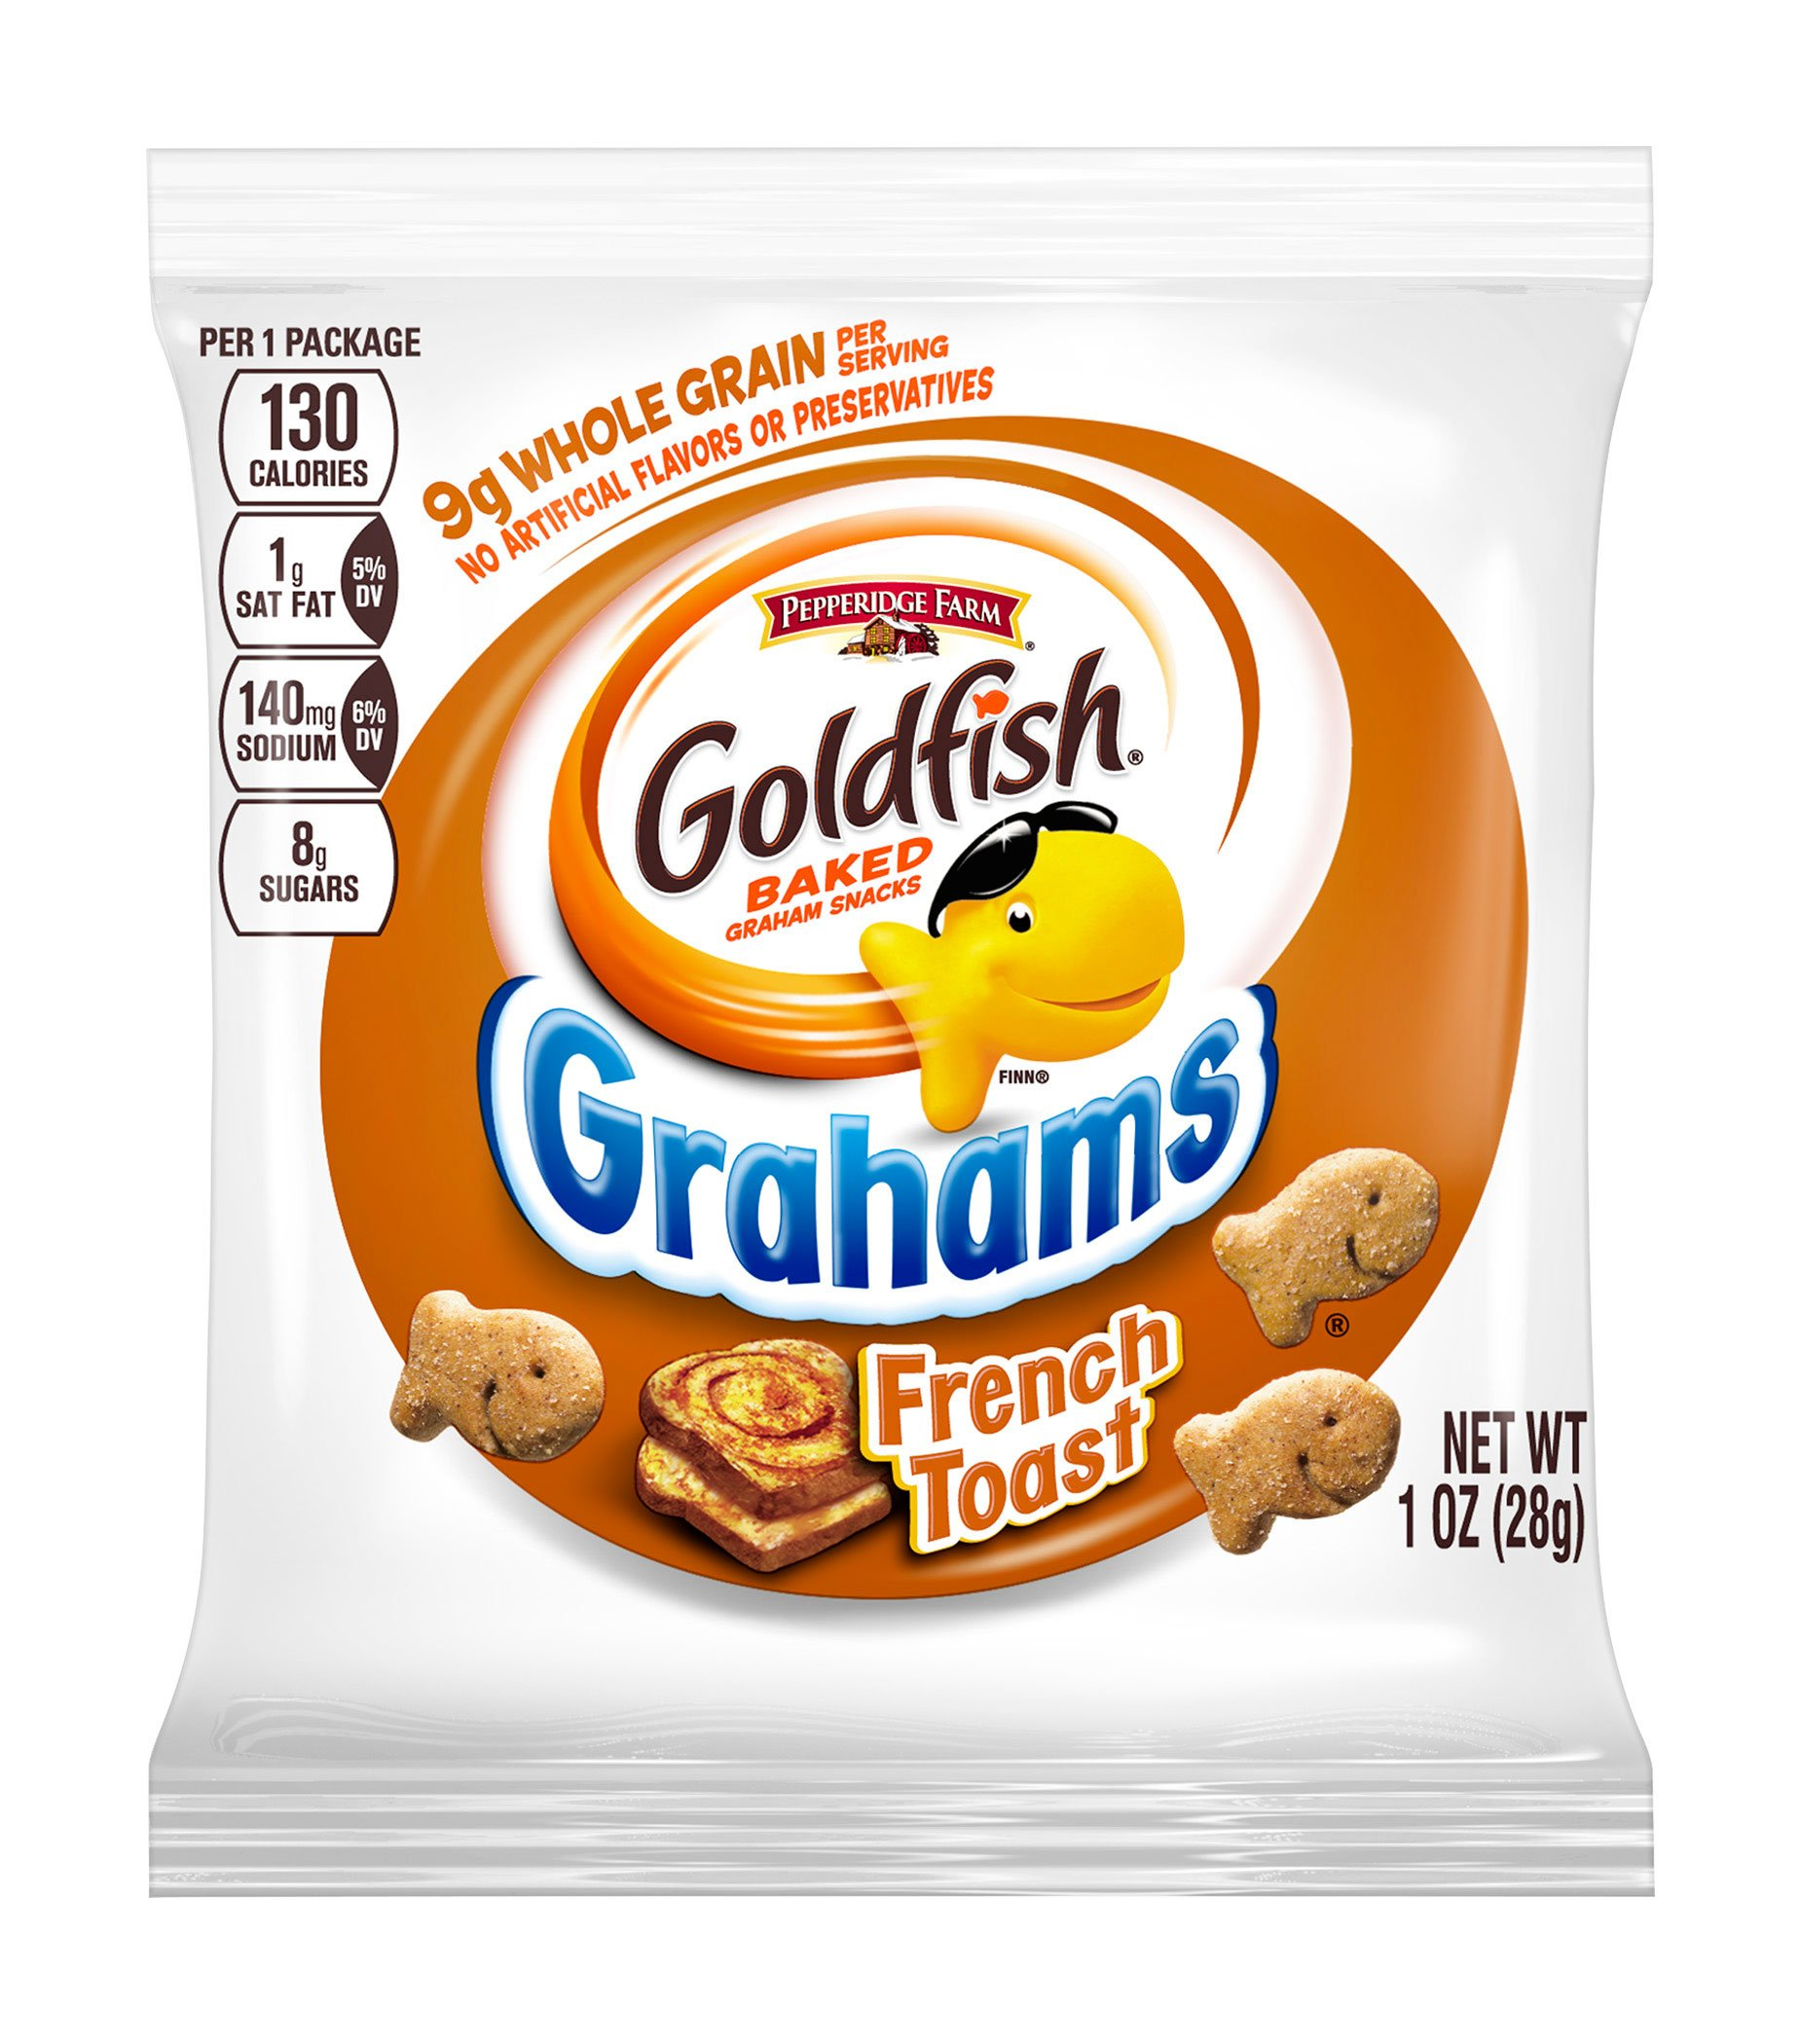 Pepperidge Farm Goldfish Grahams Baked with Whole Grain French Toast